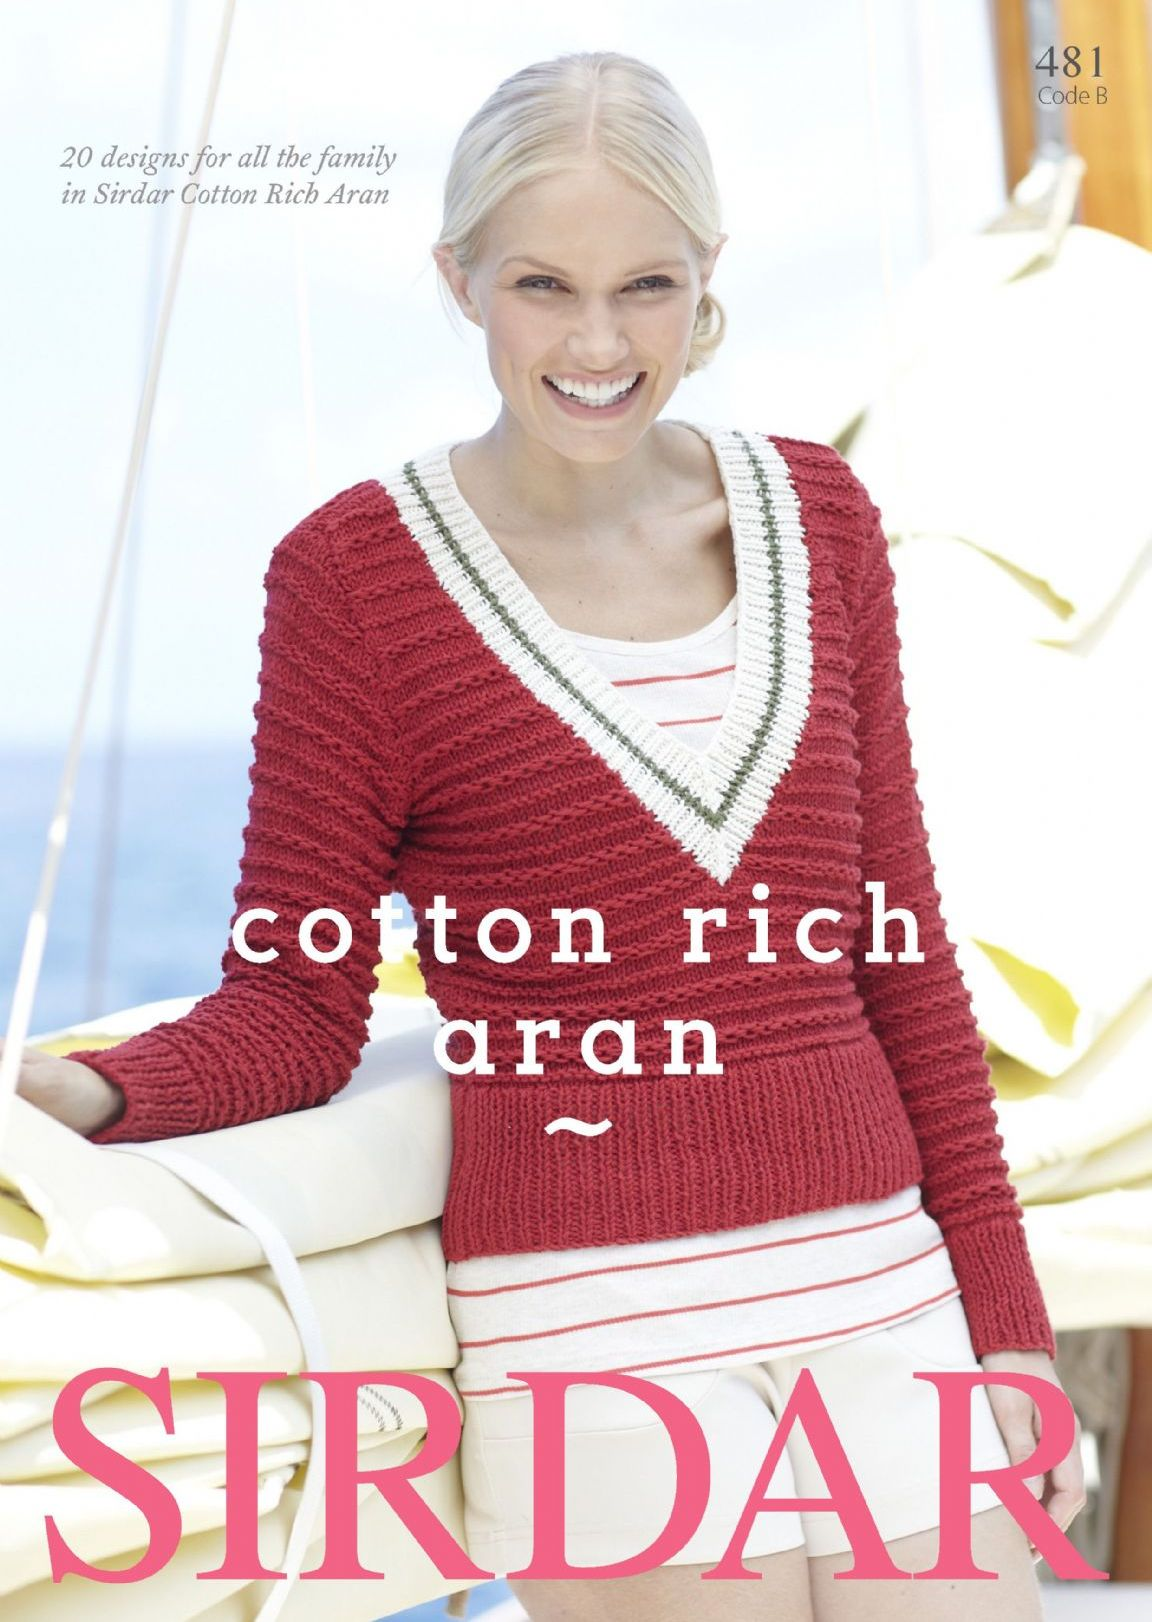 Dorable Aran Knit Patterns Motif - Blanket Knitting Pattern Ideas ...